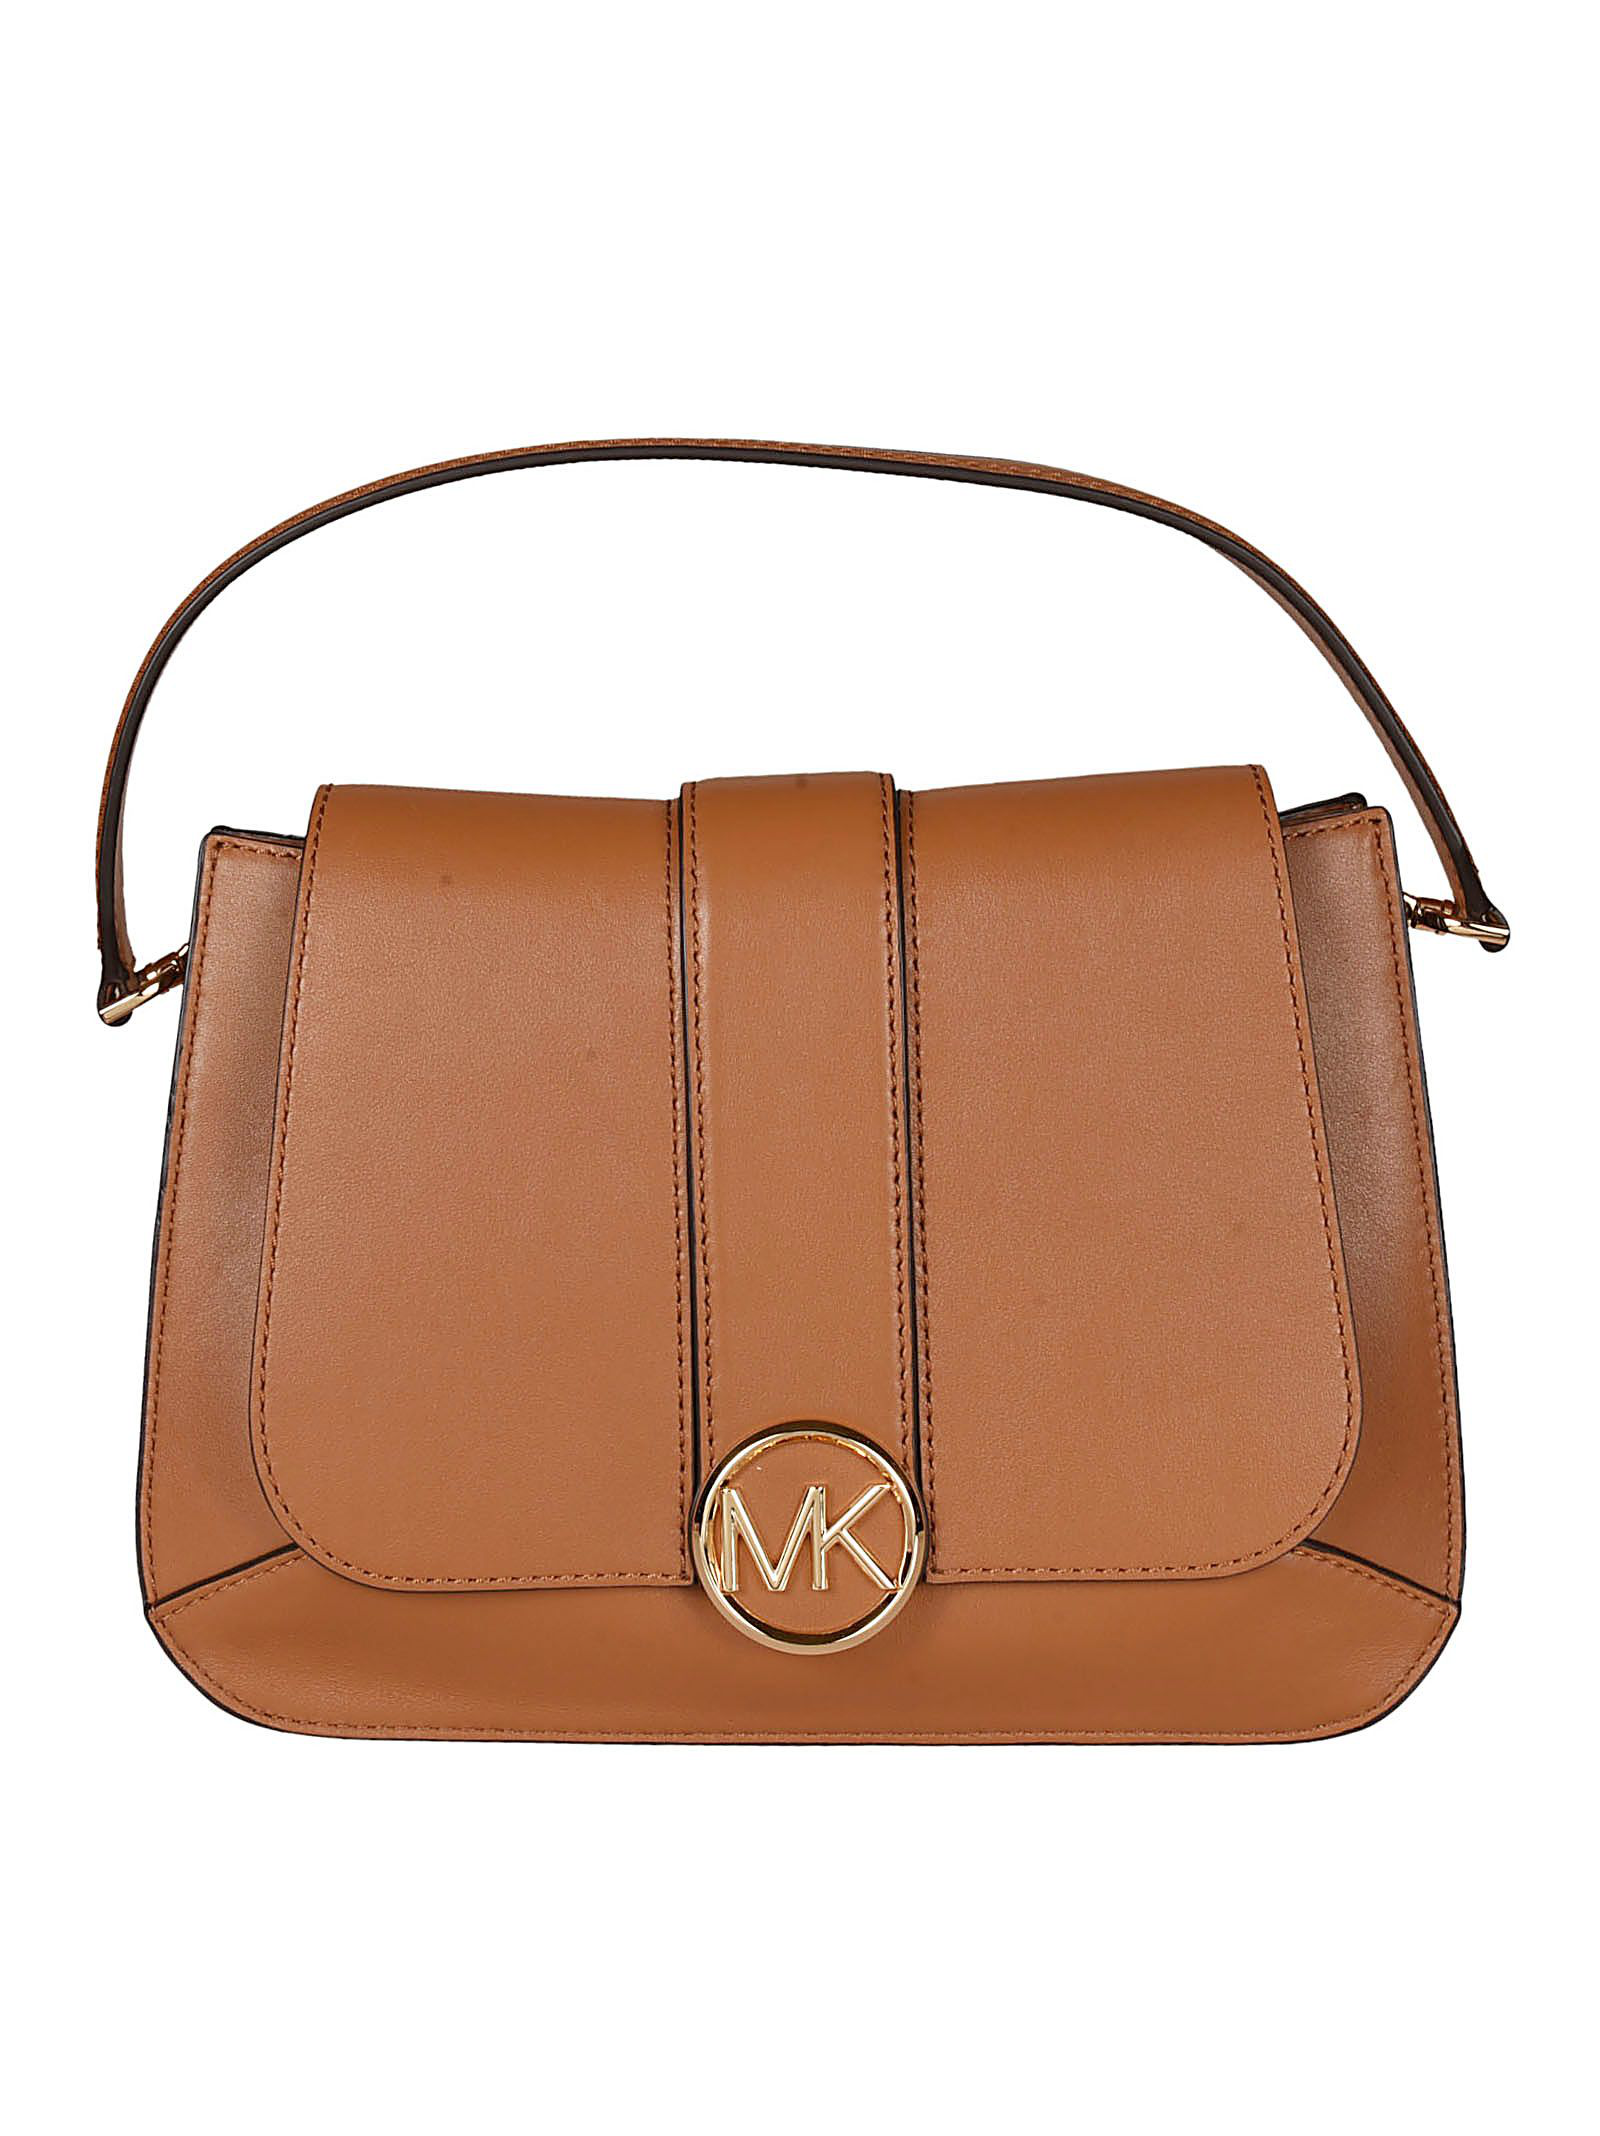 7465f6394b72 Michael Kors Lillie Shoulder Bag In Acorn | ModeSens